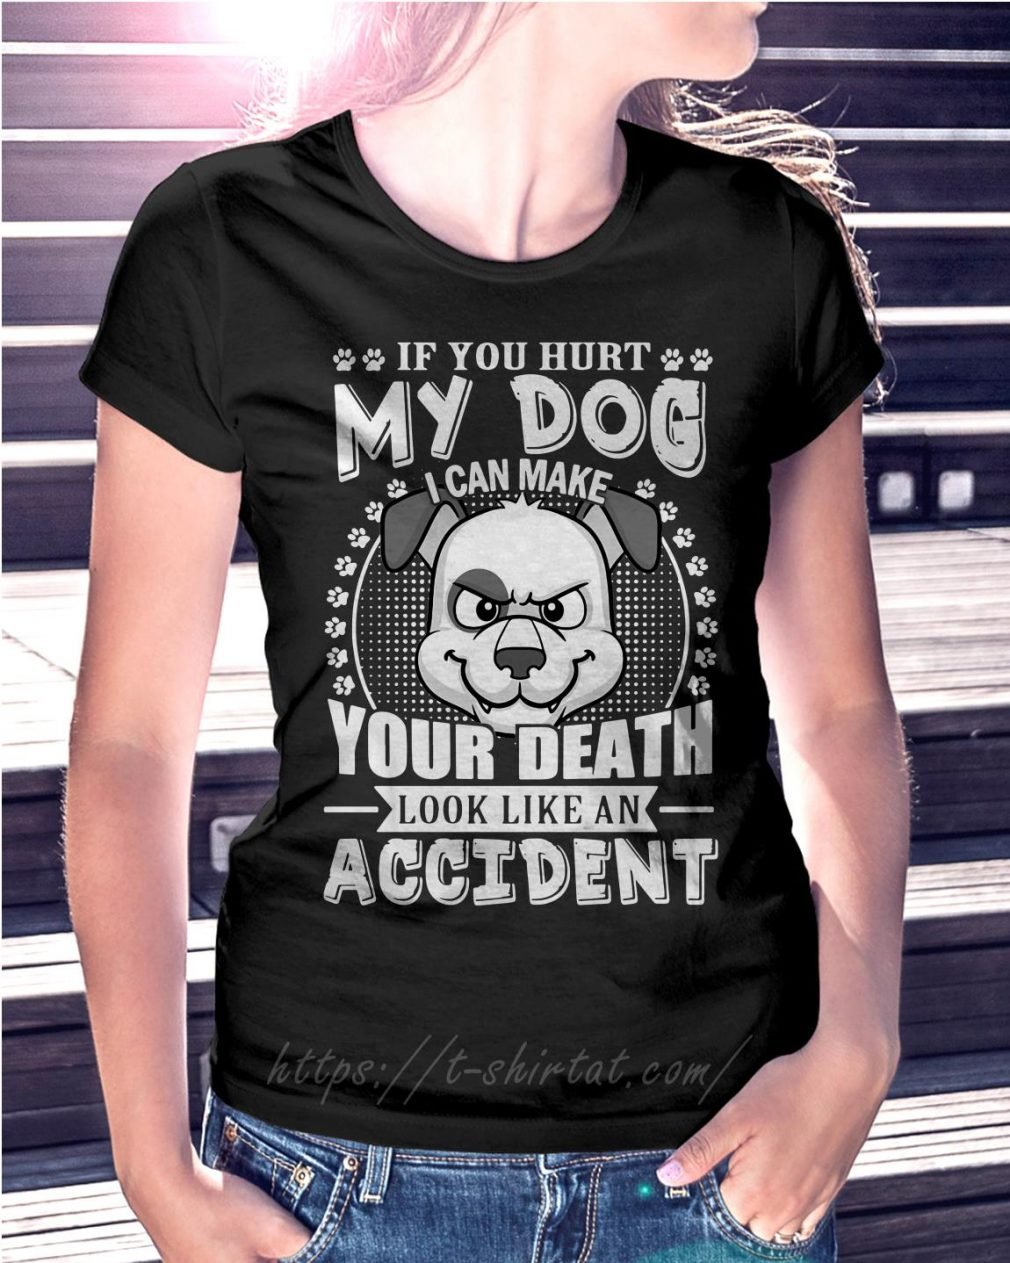 If you hurt my dog I can make your death look like an accident